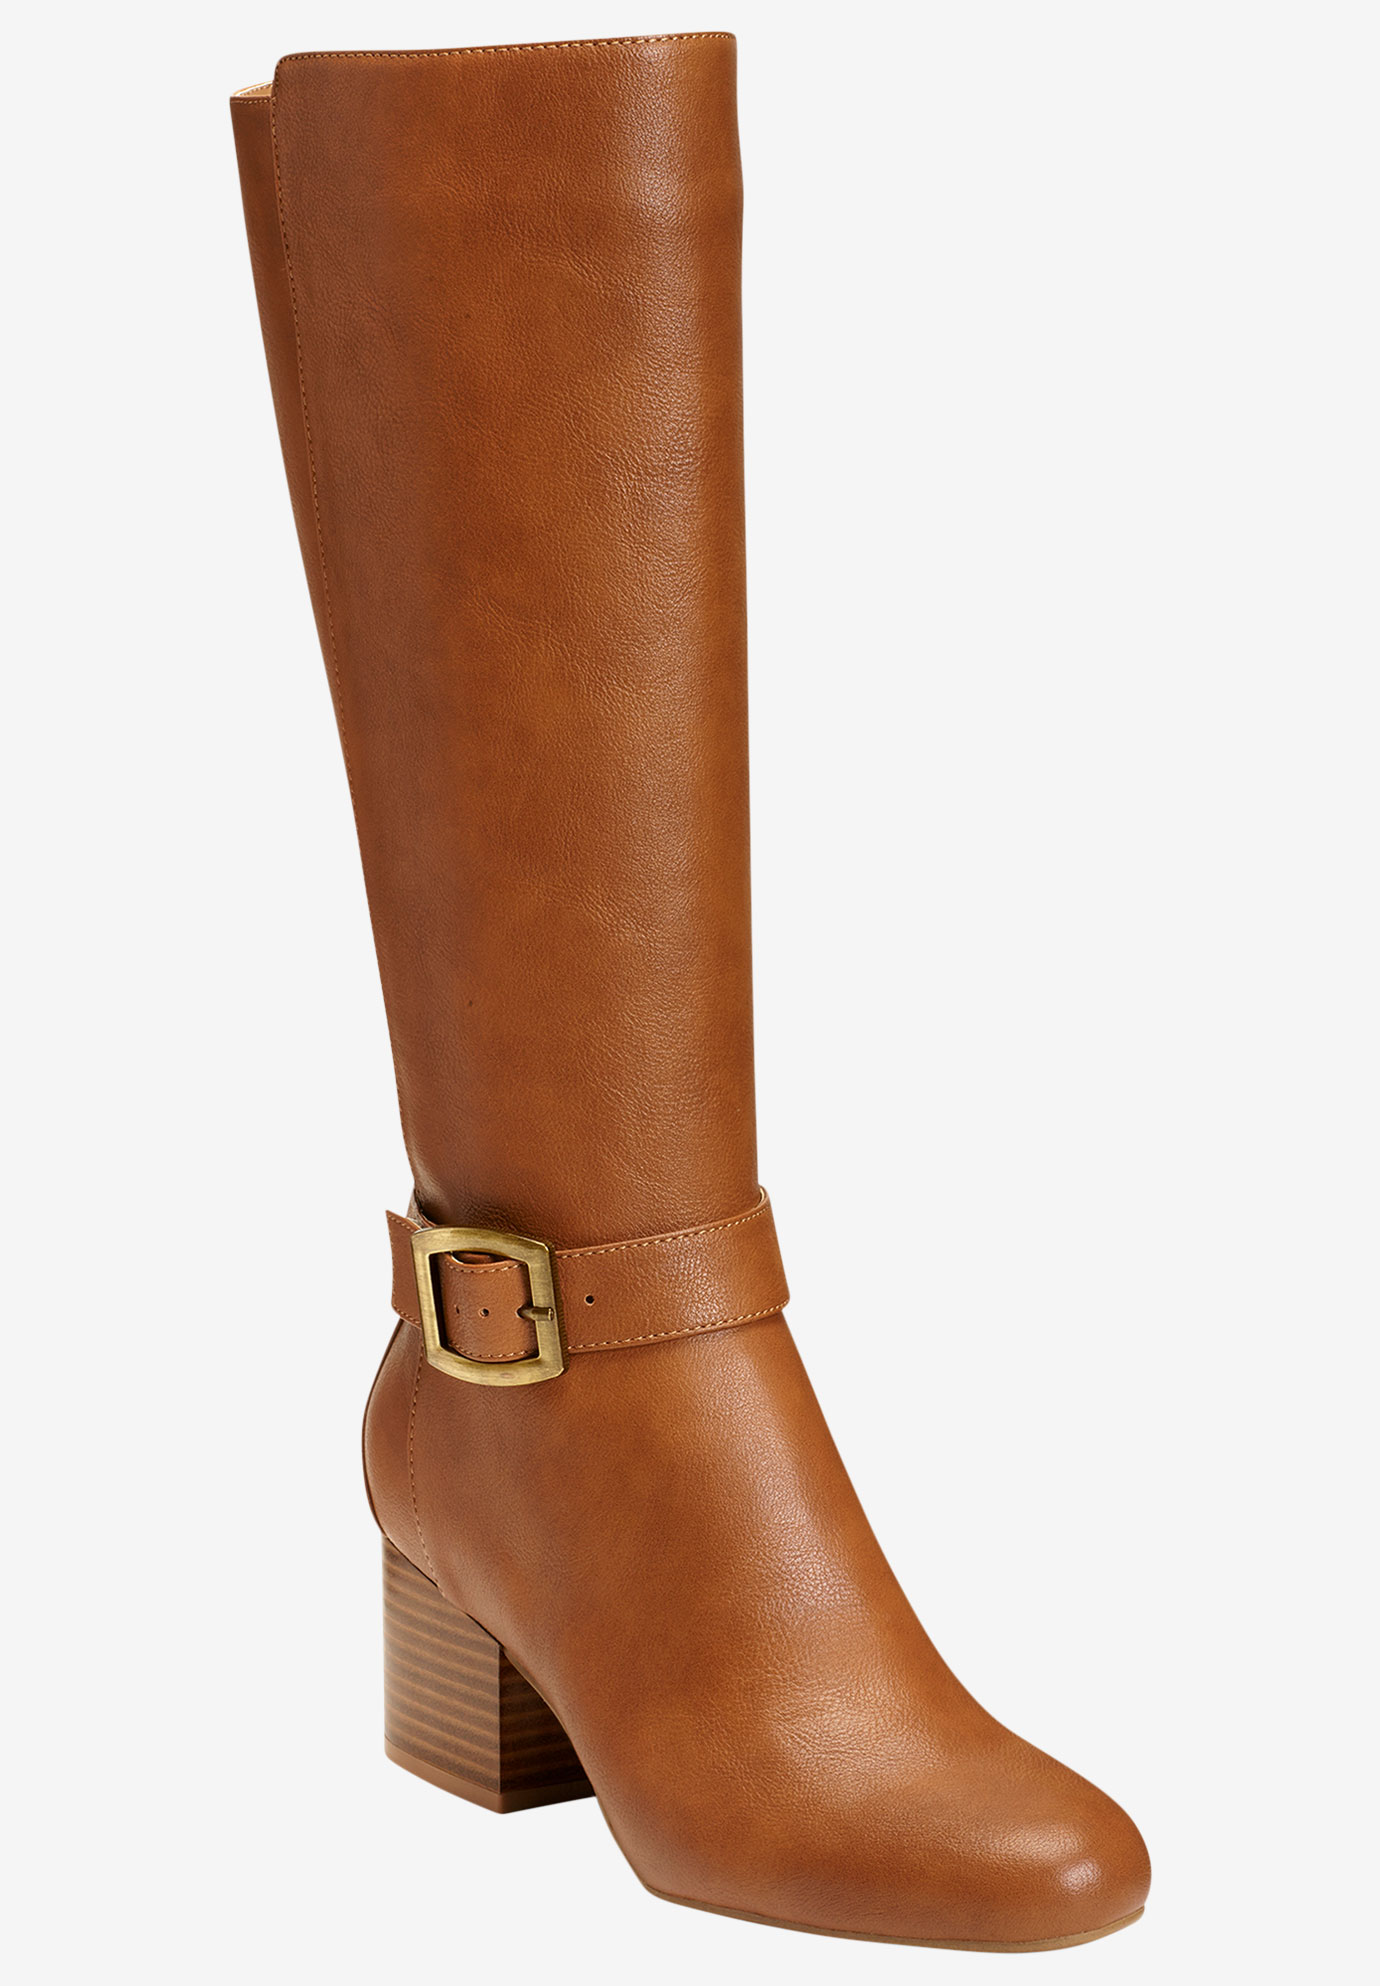 Patience Boot by Aerosoles Black,